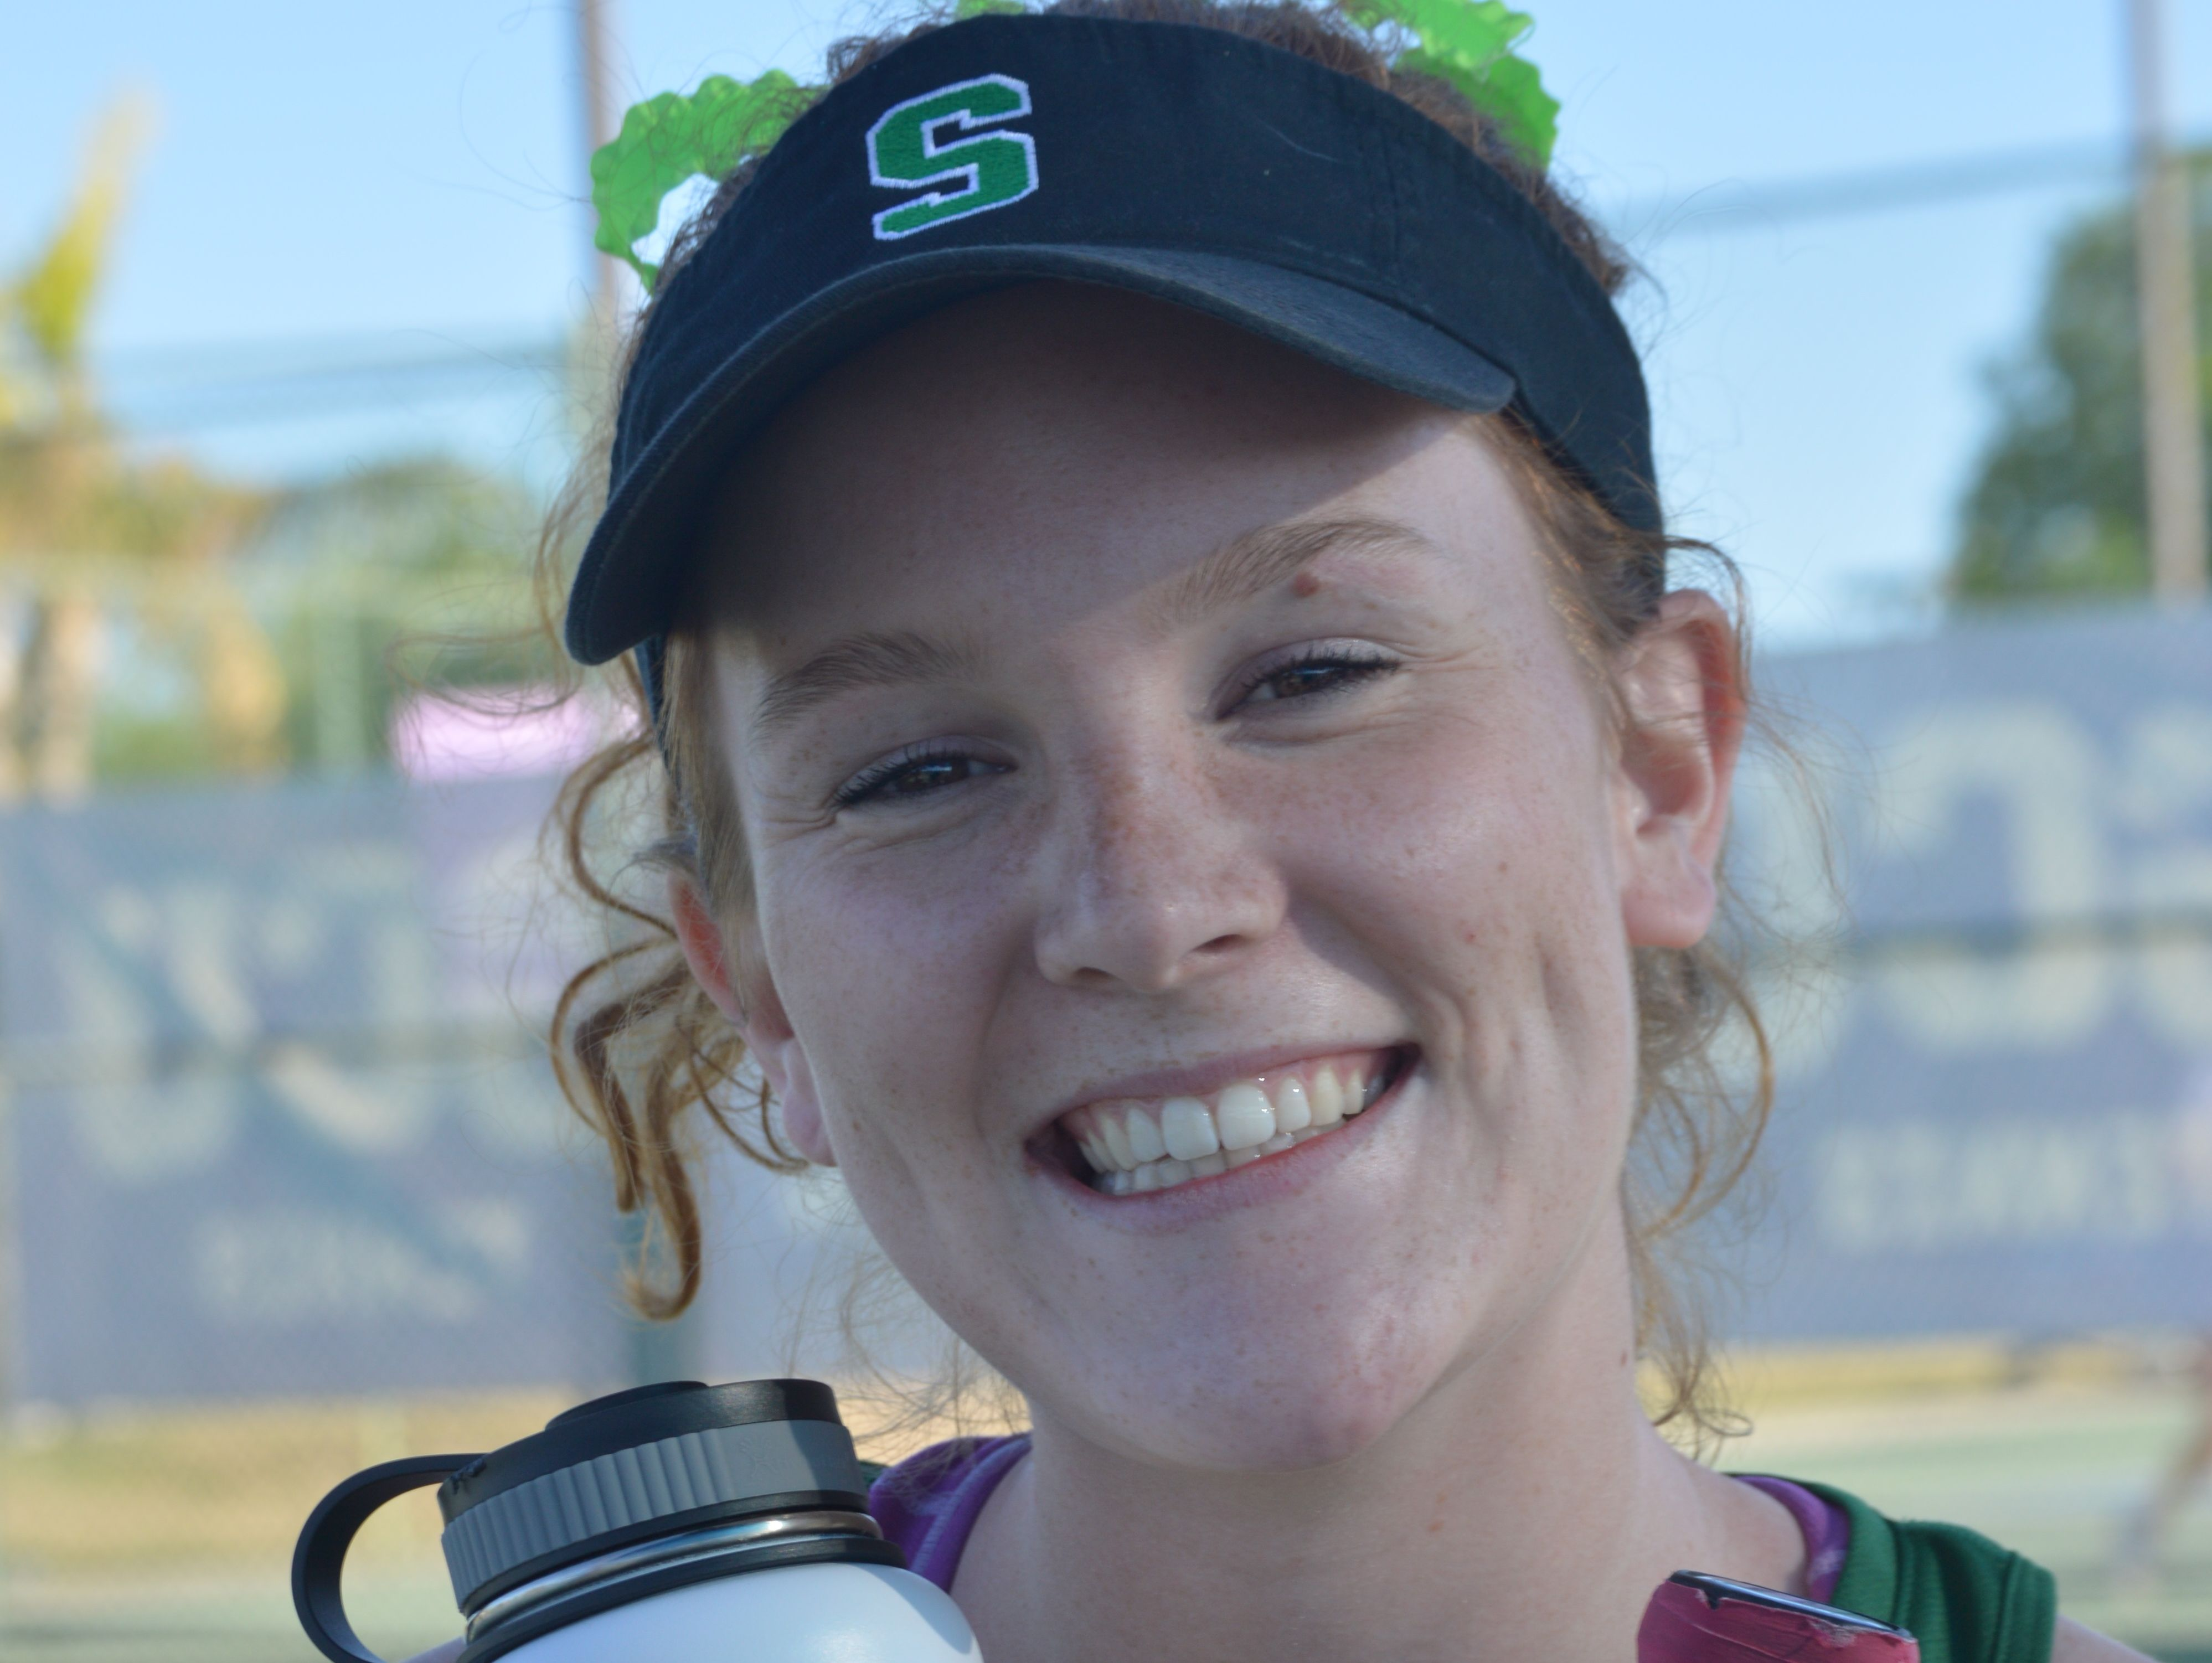 Libby Fleury, from Phoenix Sunnyslope, is azcentral sports' High Achiever of the Week for March 24-31.